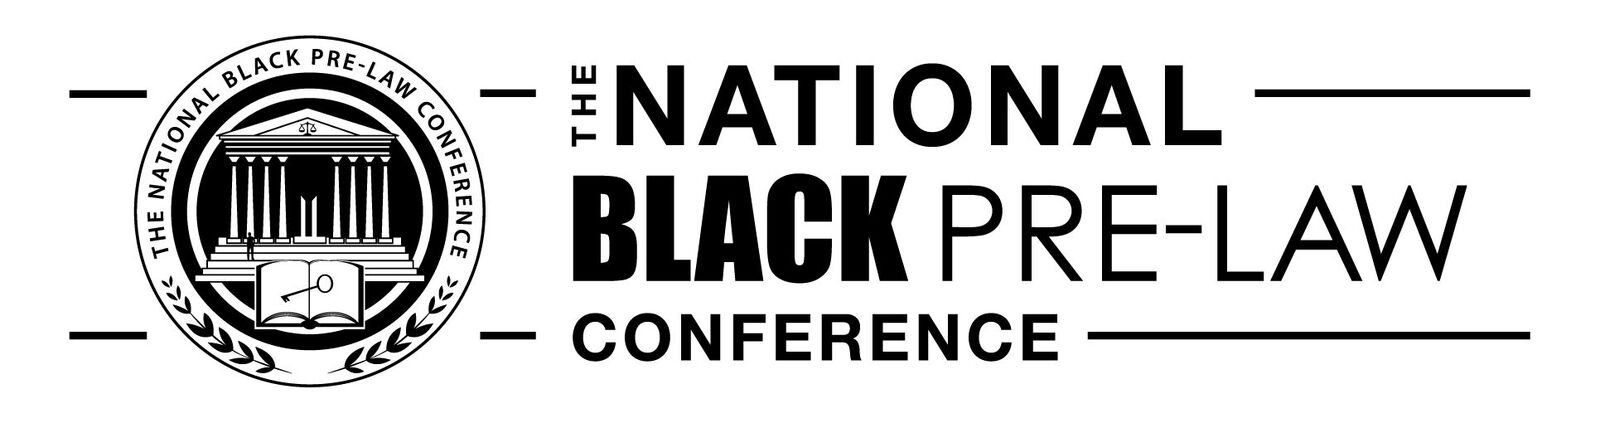 National Black Pre-Law Conference and Law Fair